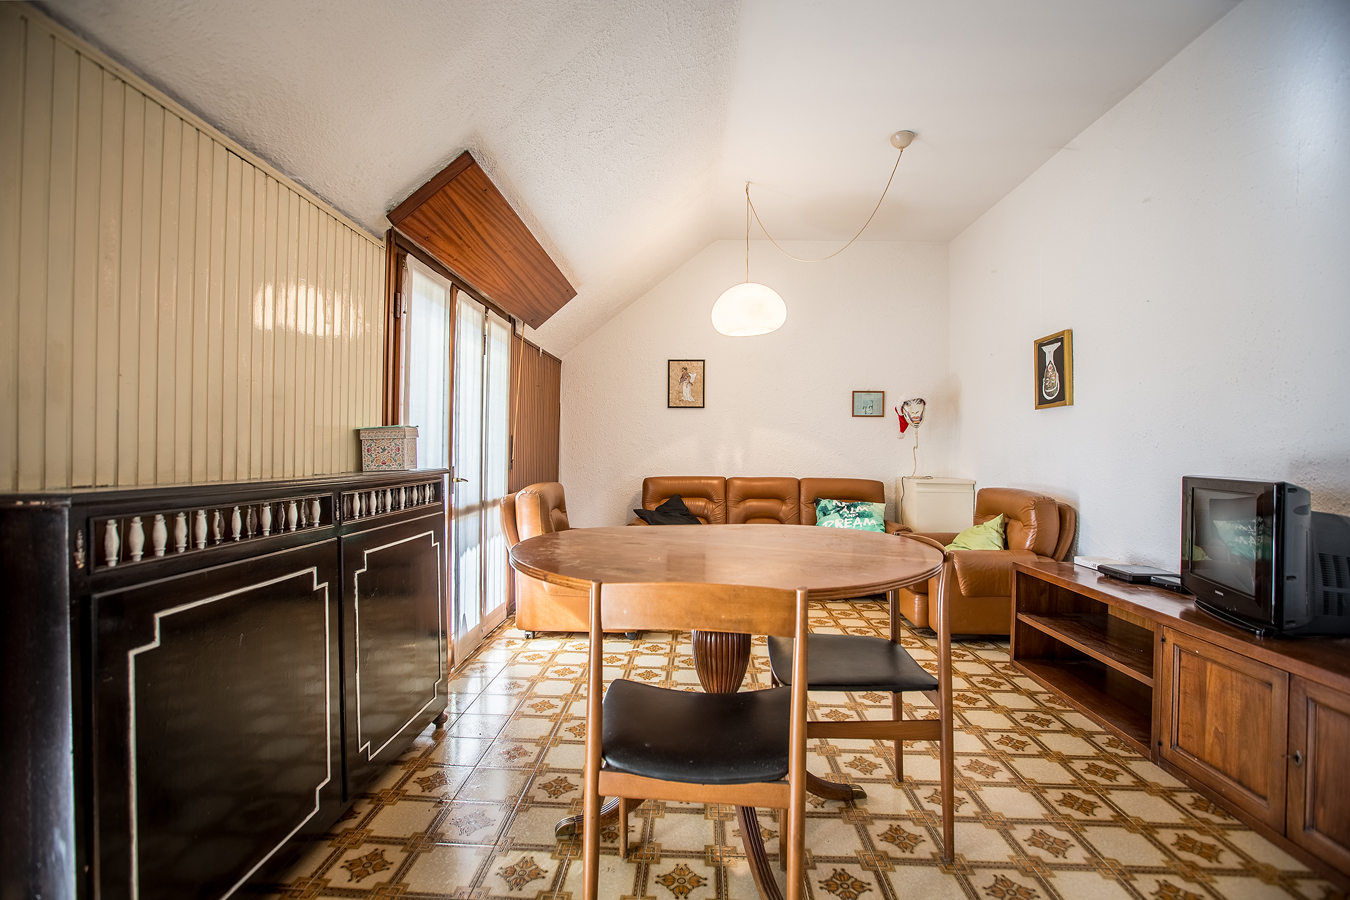 Student Apartment for rent in Via Savona, 86, 8° floor, in Milano, Italy